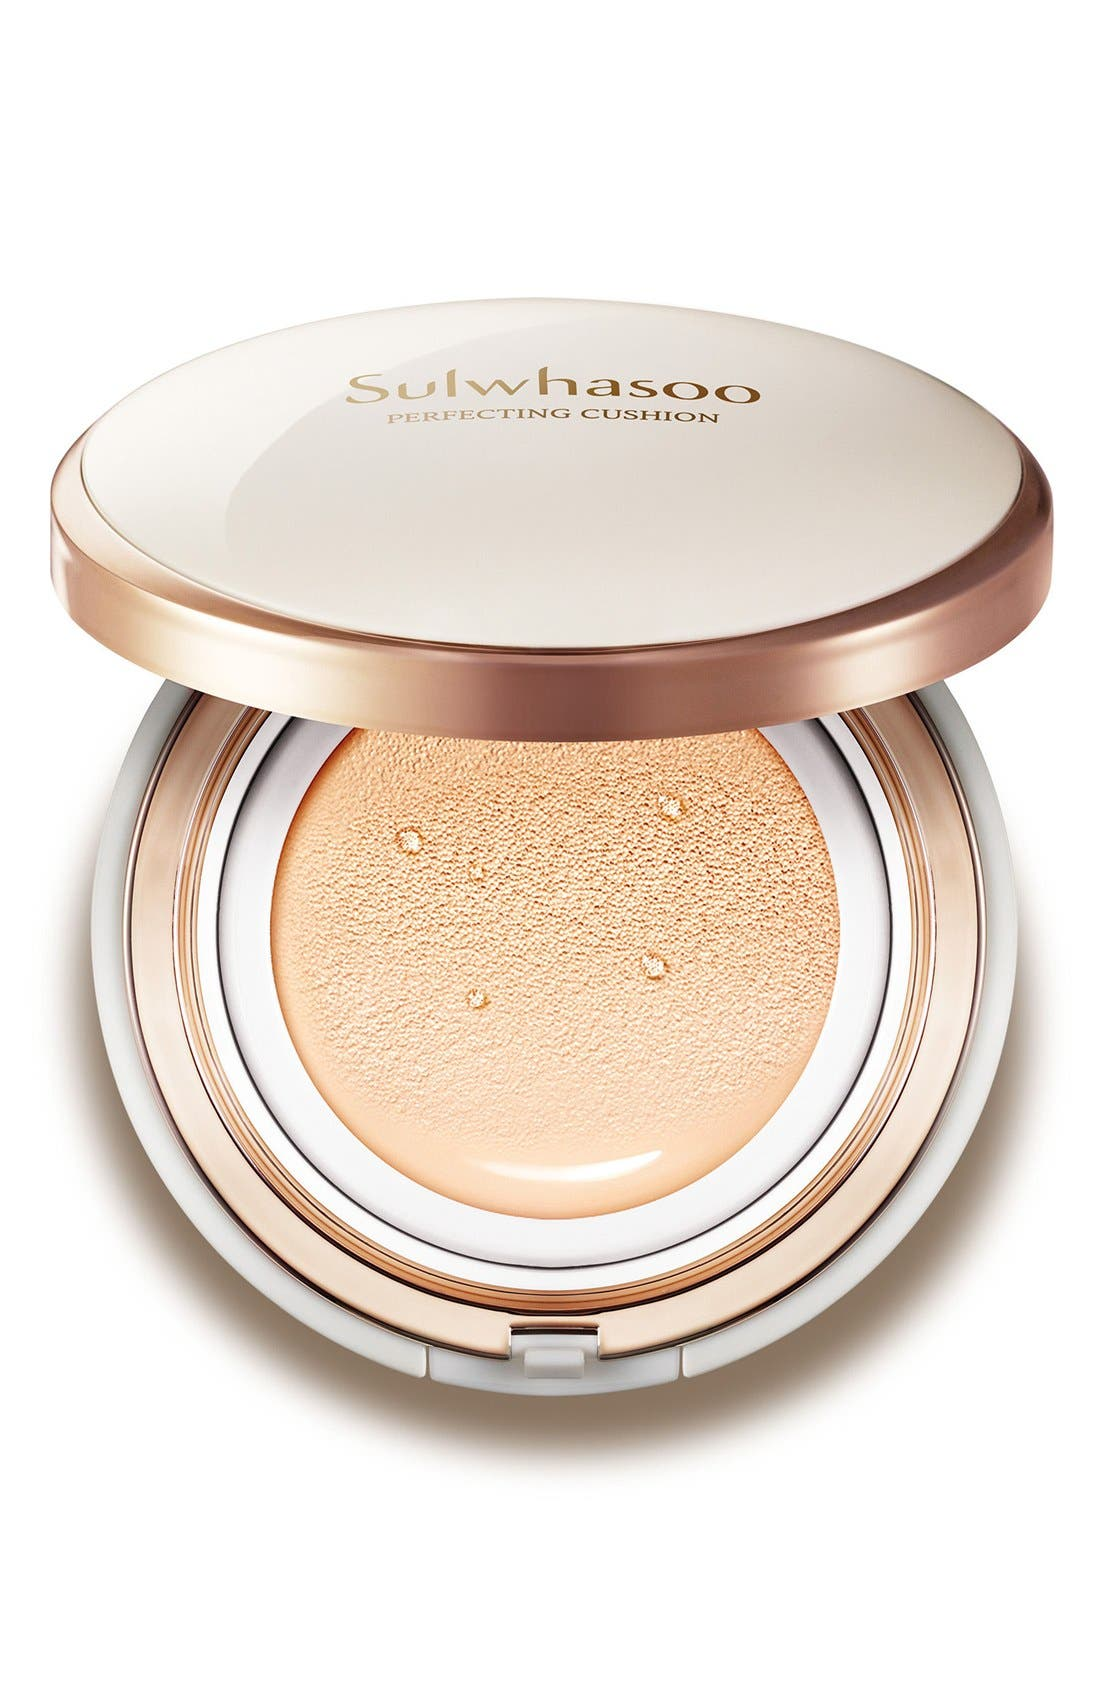 SULWHASOO, 'Perfecting Cushion' Foundation Compact, Main thumbnail 1, color, 23 MEDIUM BEIGE